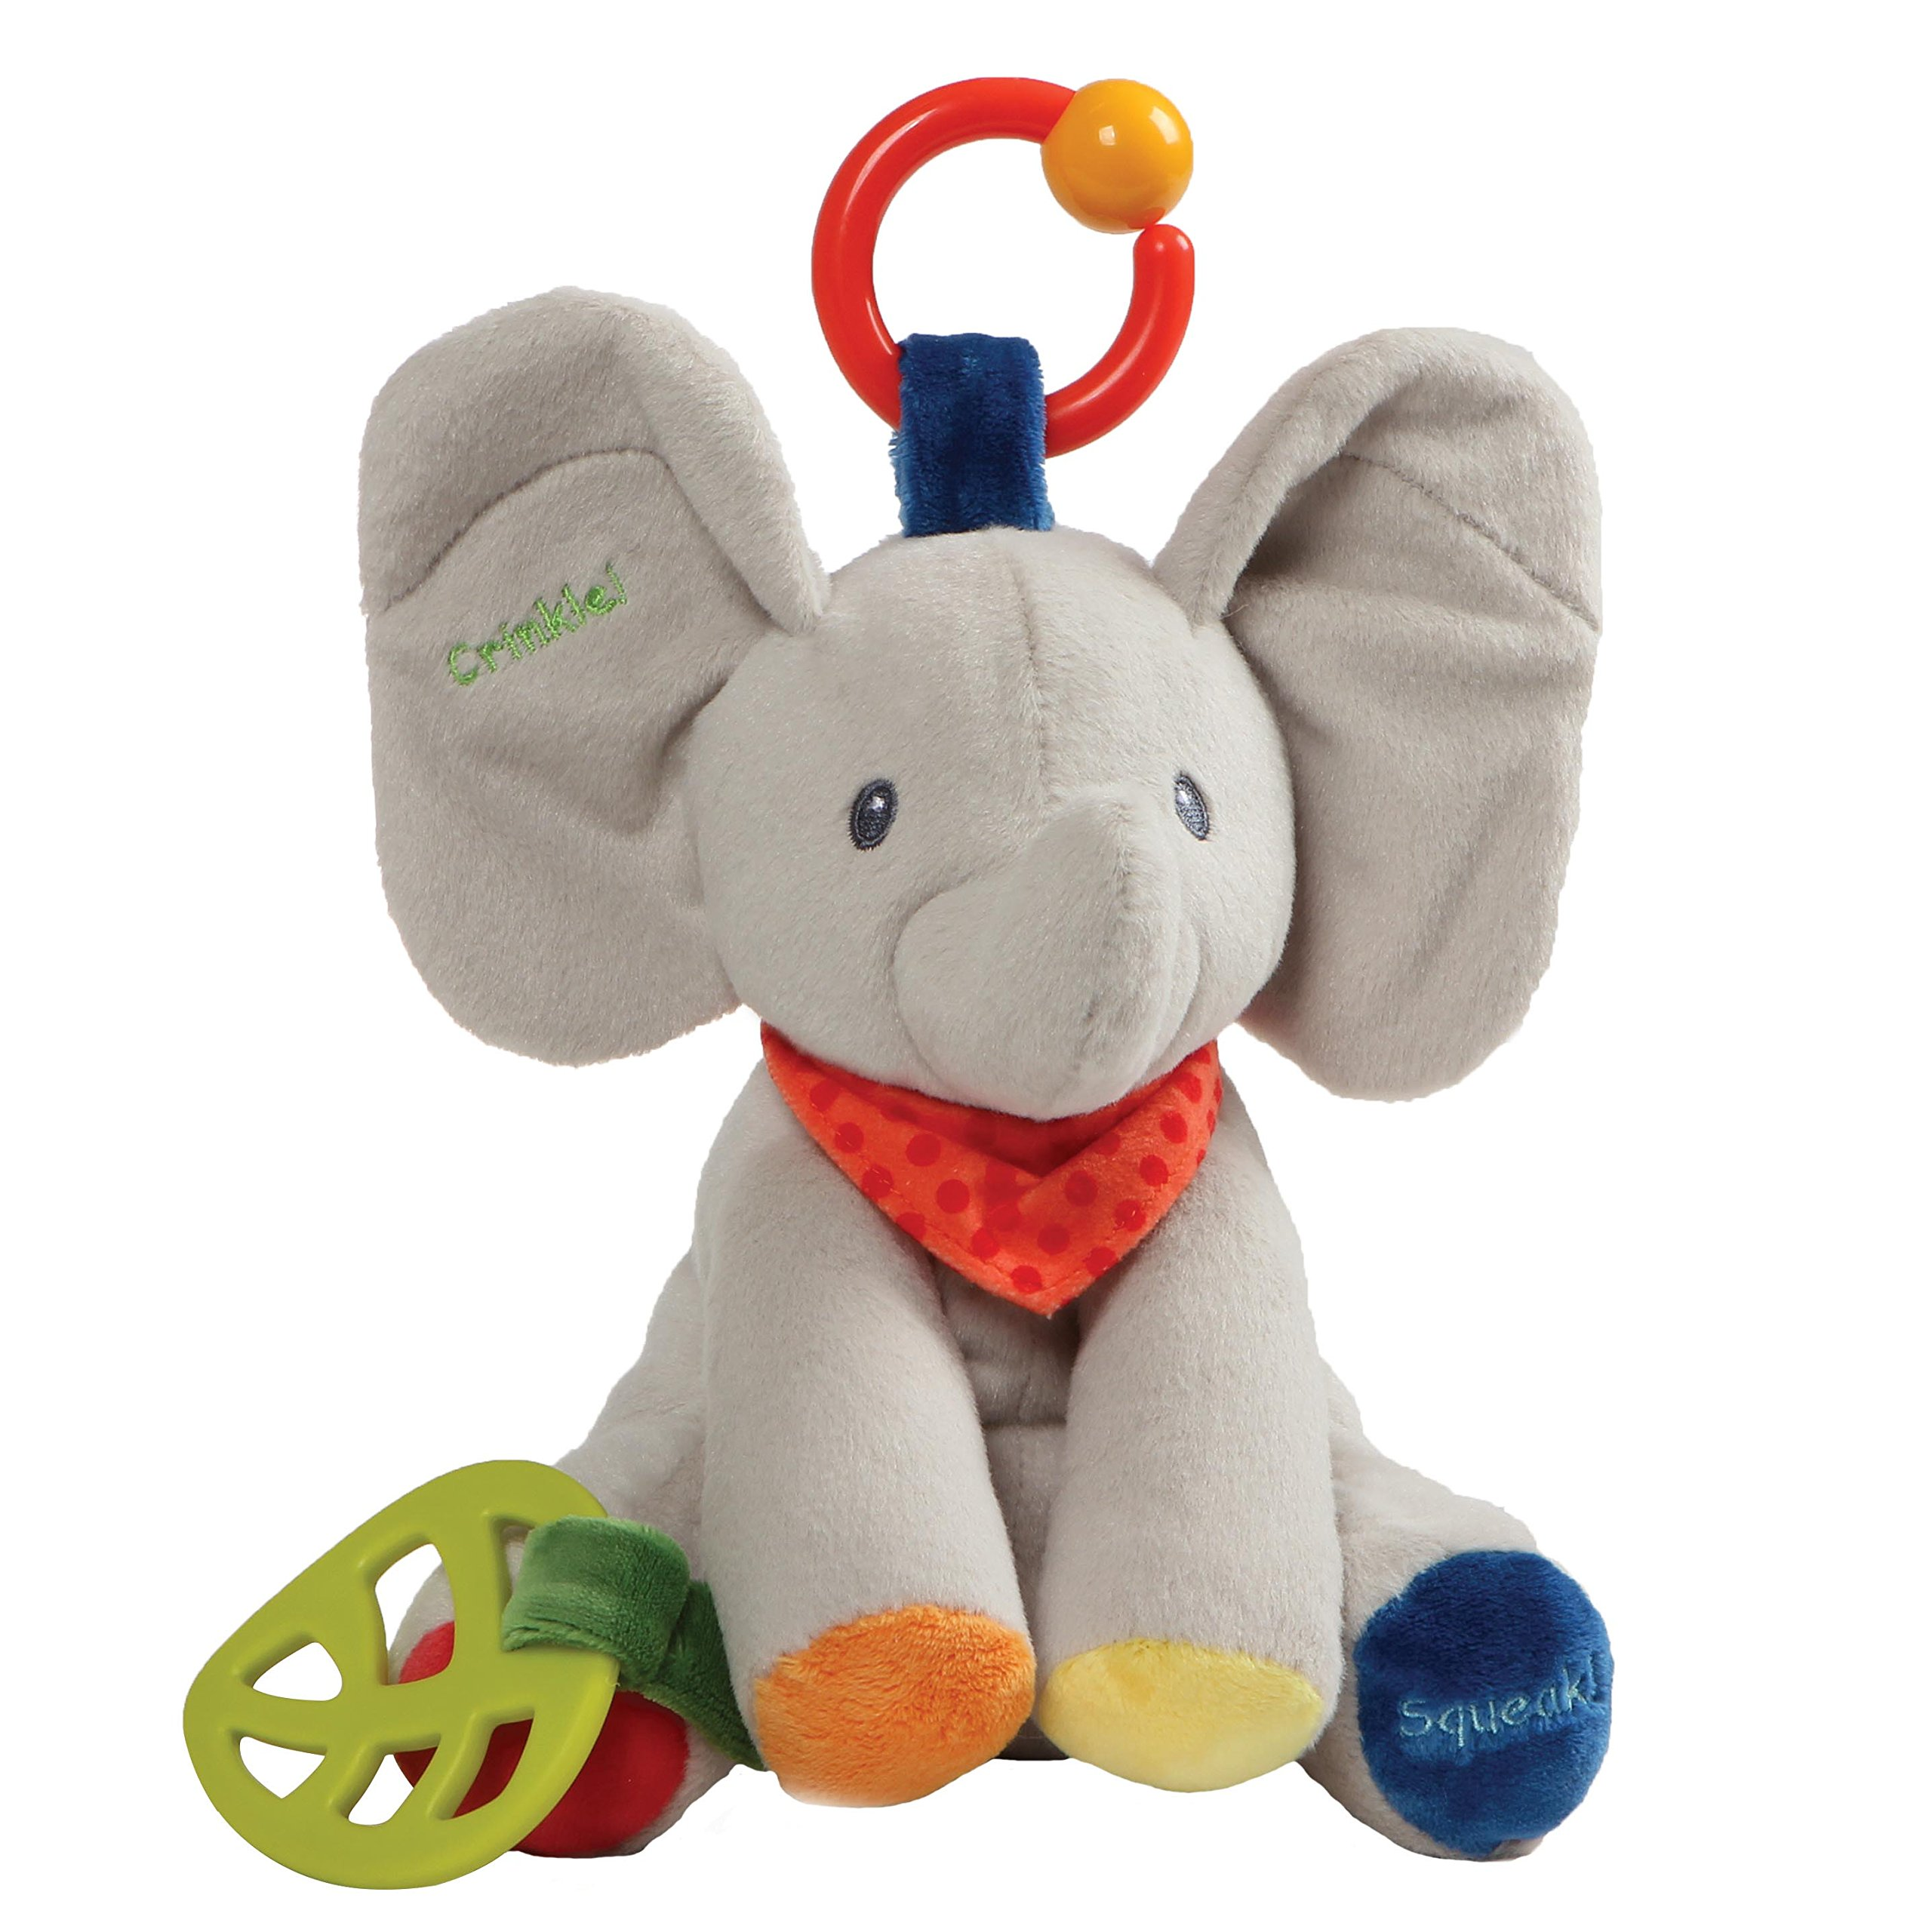 Baby GUND Flappy The Elephant Activity Toy for Educational Play Stuffed Animal Plush, 8.5""